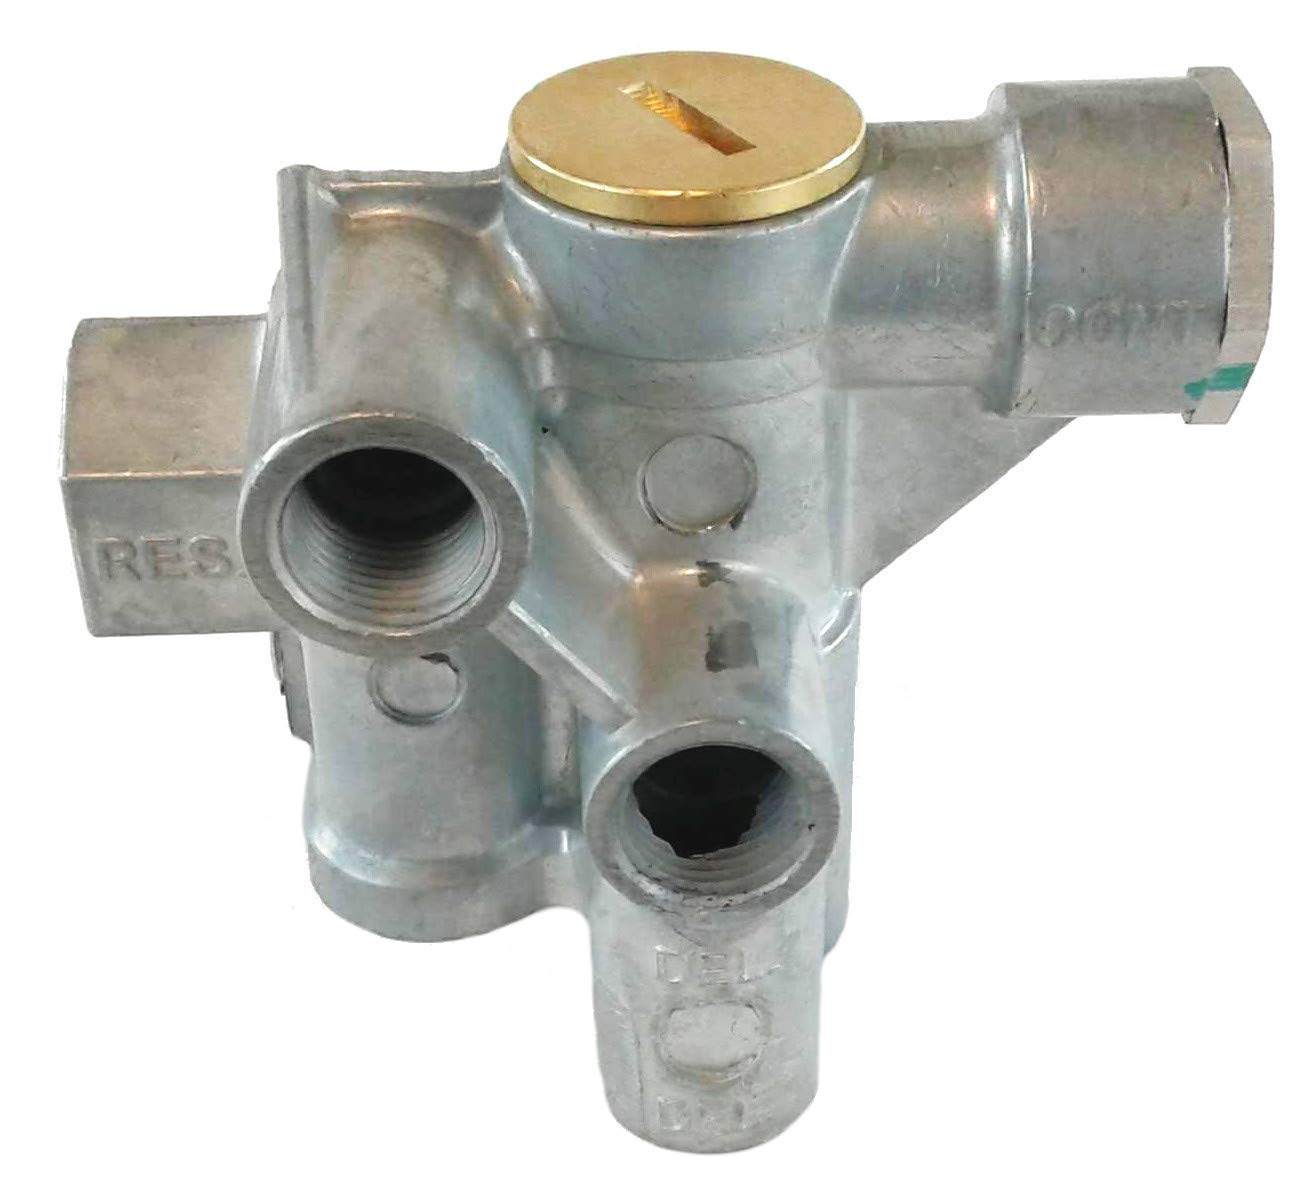 Trailer Service Internal Pressure Protection Reservoir Priority Spring Brake Control Valve for Heavy Duty Big Rigs